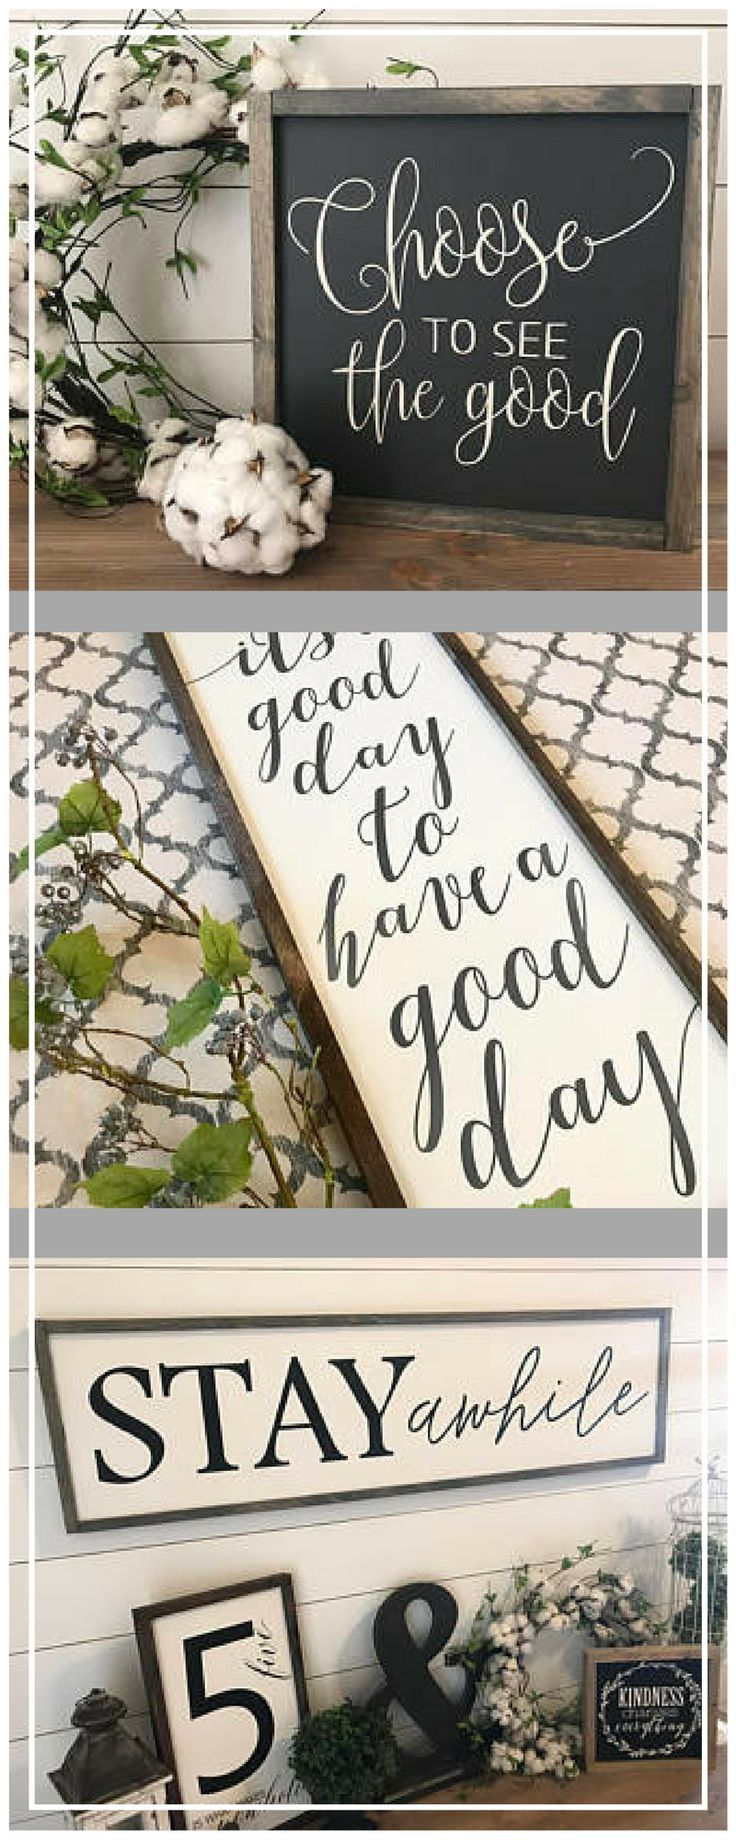 I love the positive messages of these farmhouse signs - great decor ...